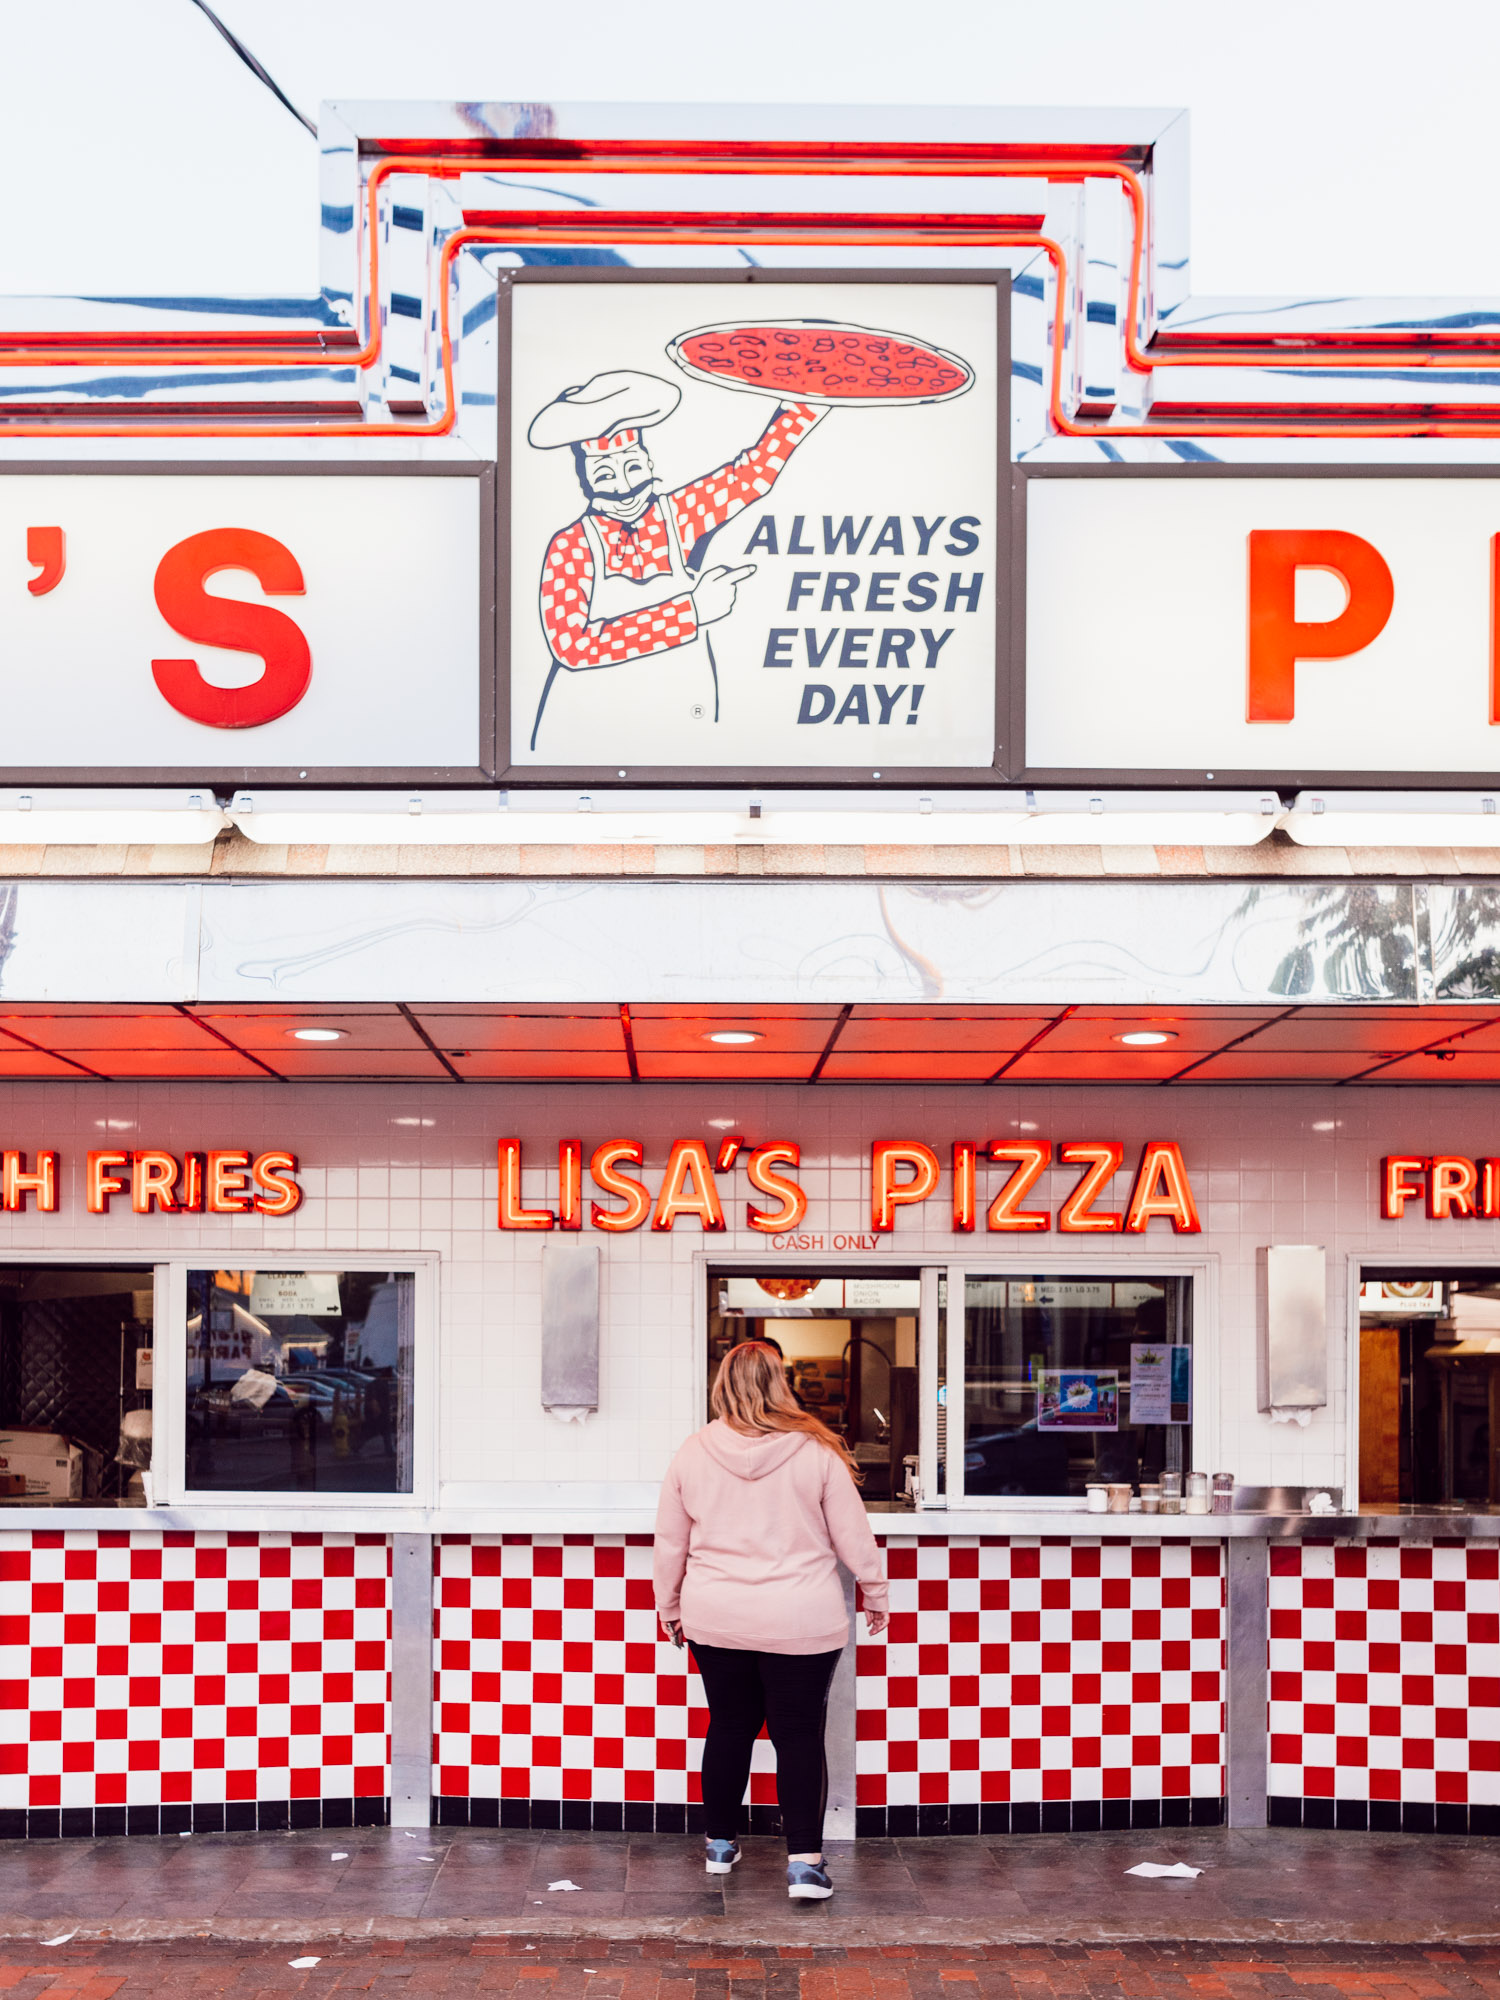 Lisa's Pizza - Old Orchard Beach - Maine - Best Things To Do In Maine - Jeff On The Road - All photos are under Copyright  © 2019 Jeff Frenette Photography / dezjeff. To use the photos, please contact me at dezjeff@me.com.